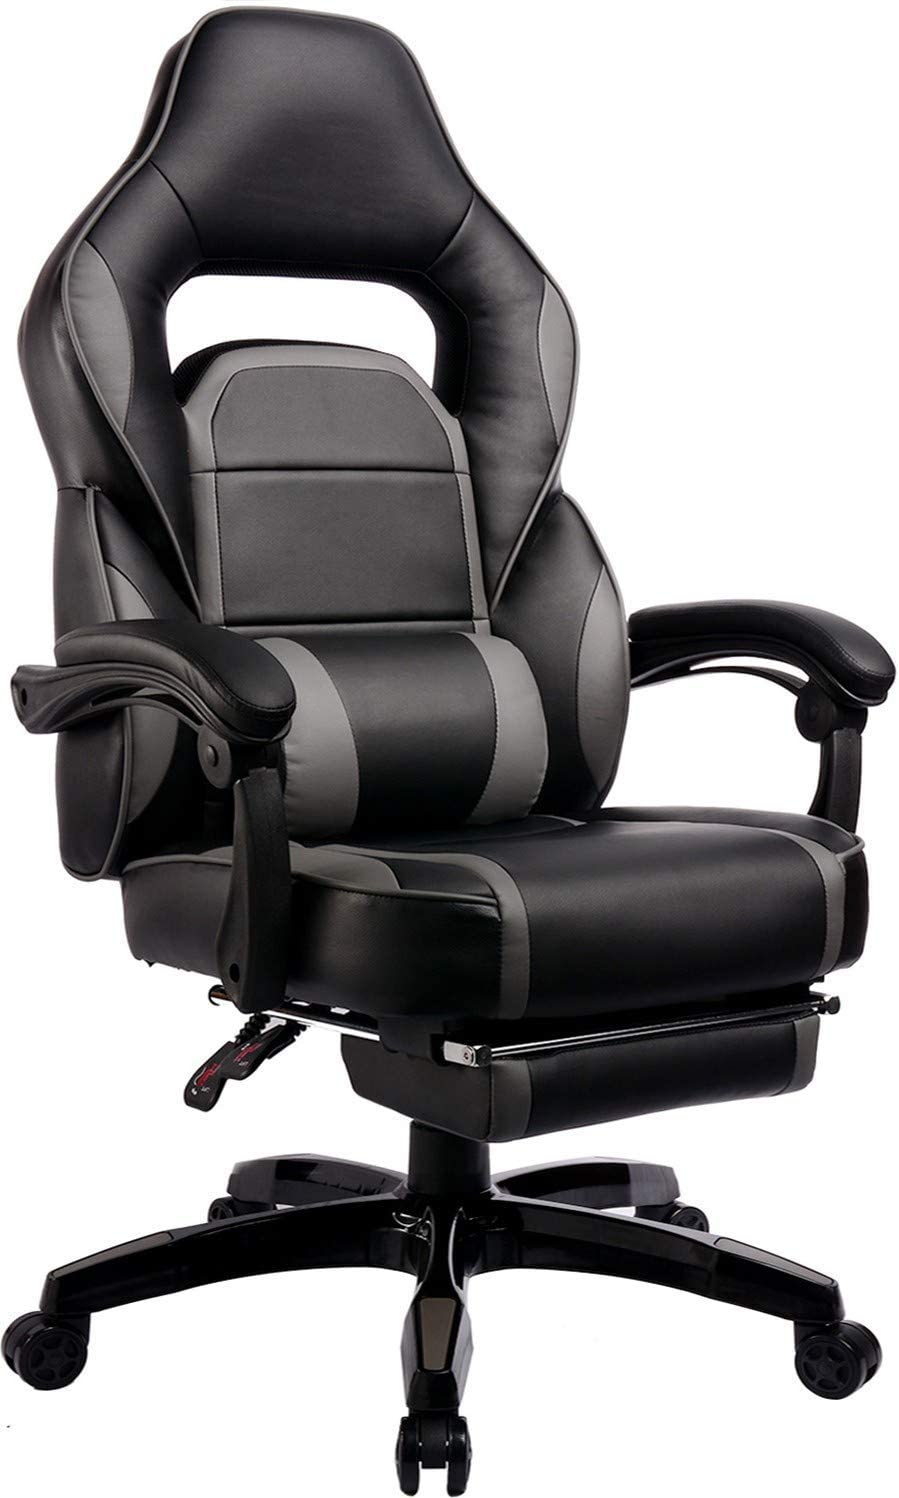 Big and Tall Gaming Chair High Back PU Leather PC Racing Computer Desk Office Executive Swivel Recliner